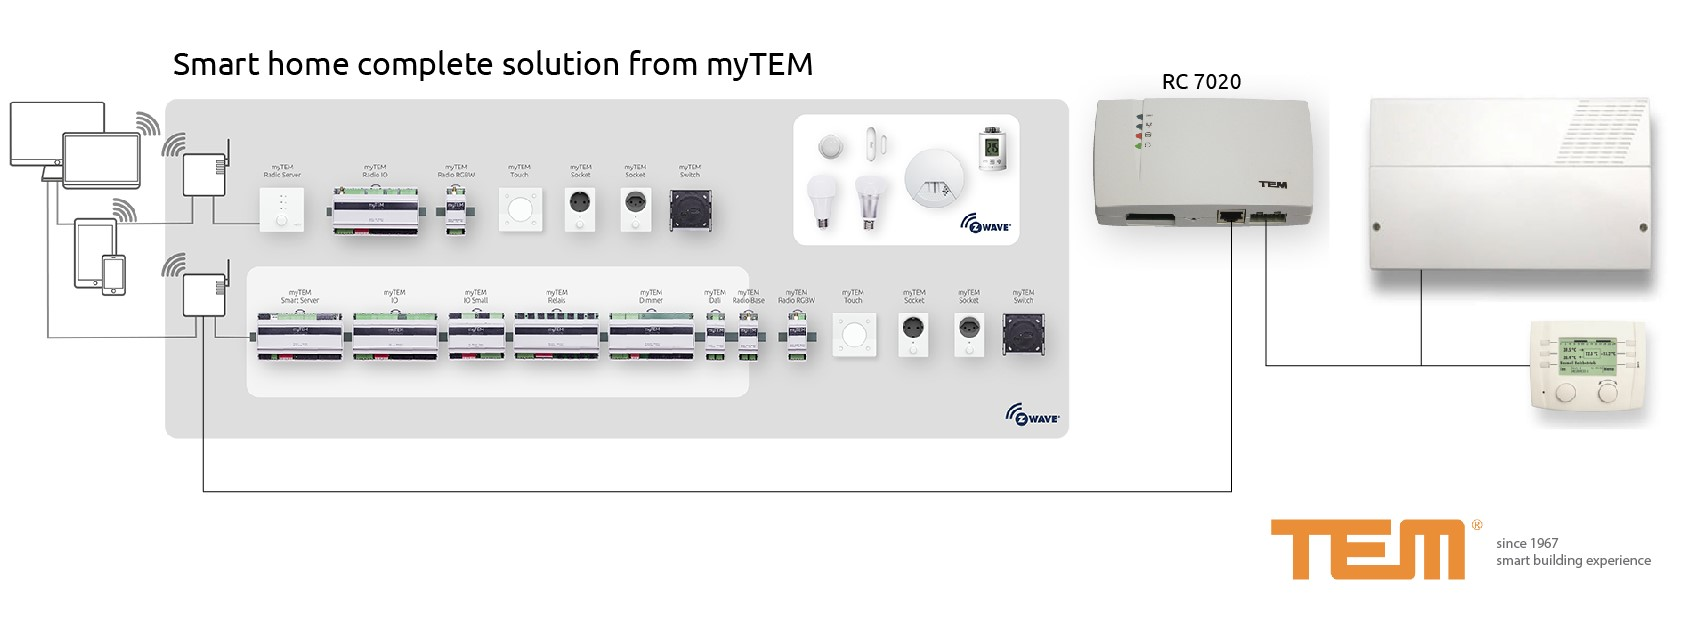 complete solution mytem smarthome with rc 7020